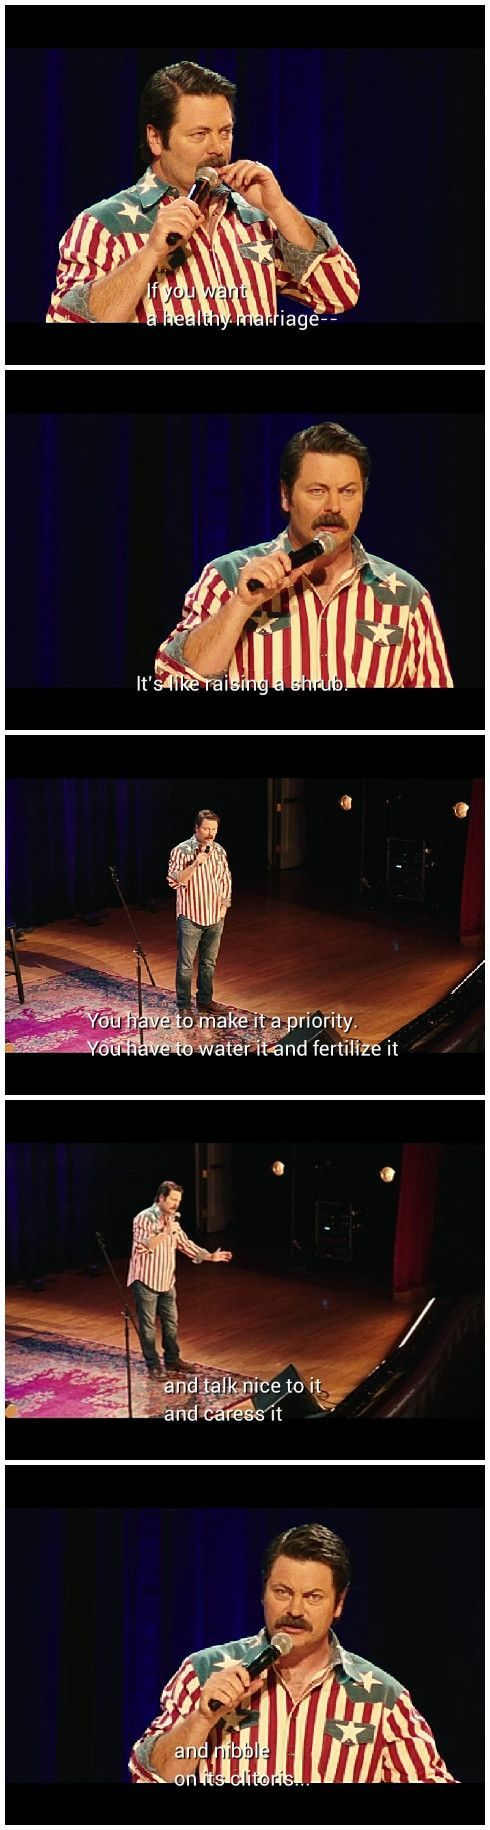 Funniest Memes - [Nick Offerman on healthy marriages] Check more at http://www.funniestmemes.com/funniest-memes-nick-offerman-on-healthy-marriages/